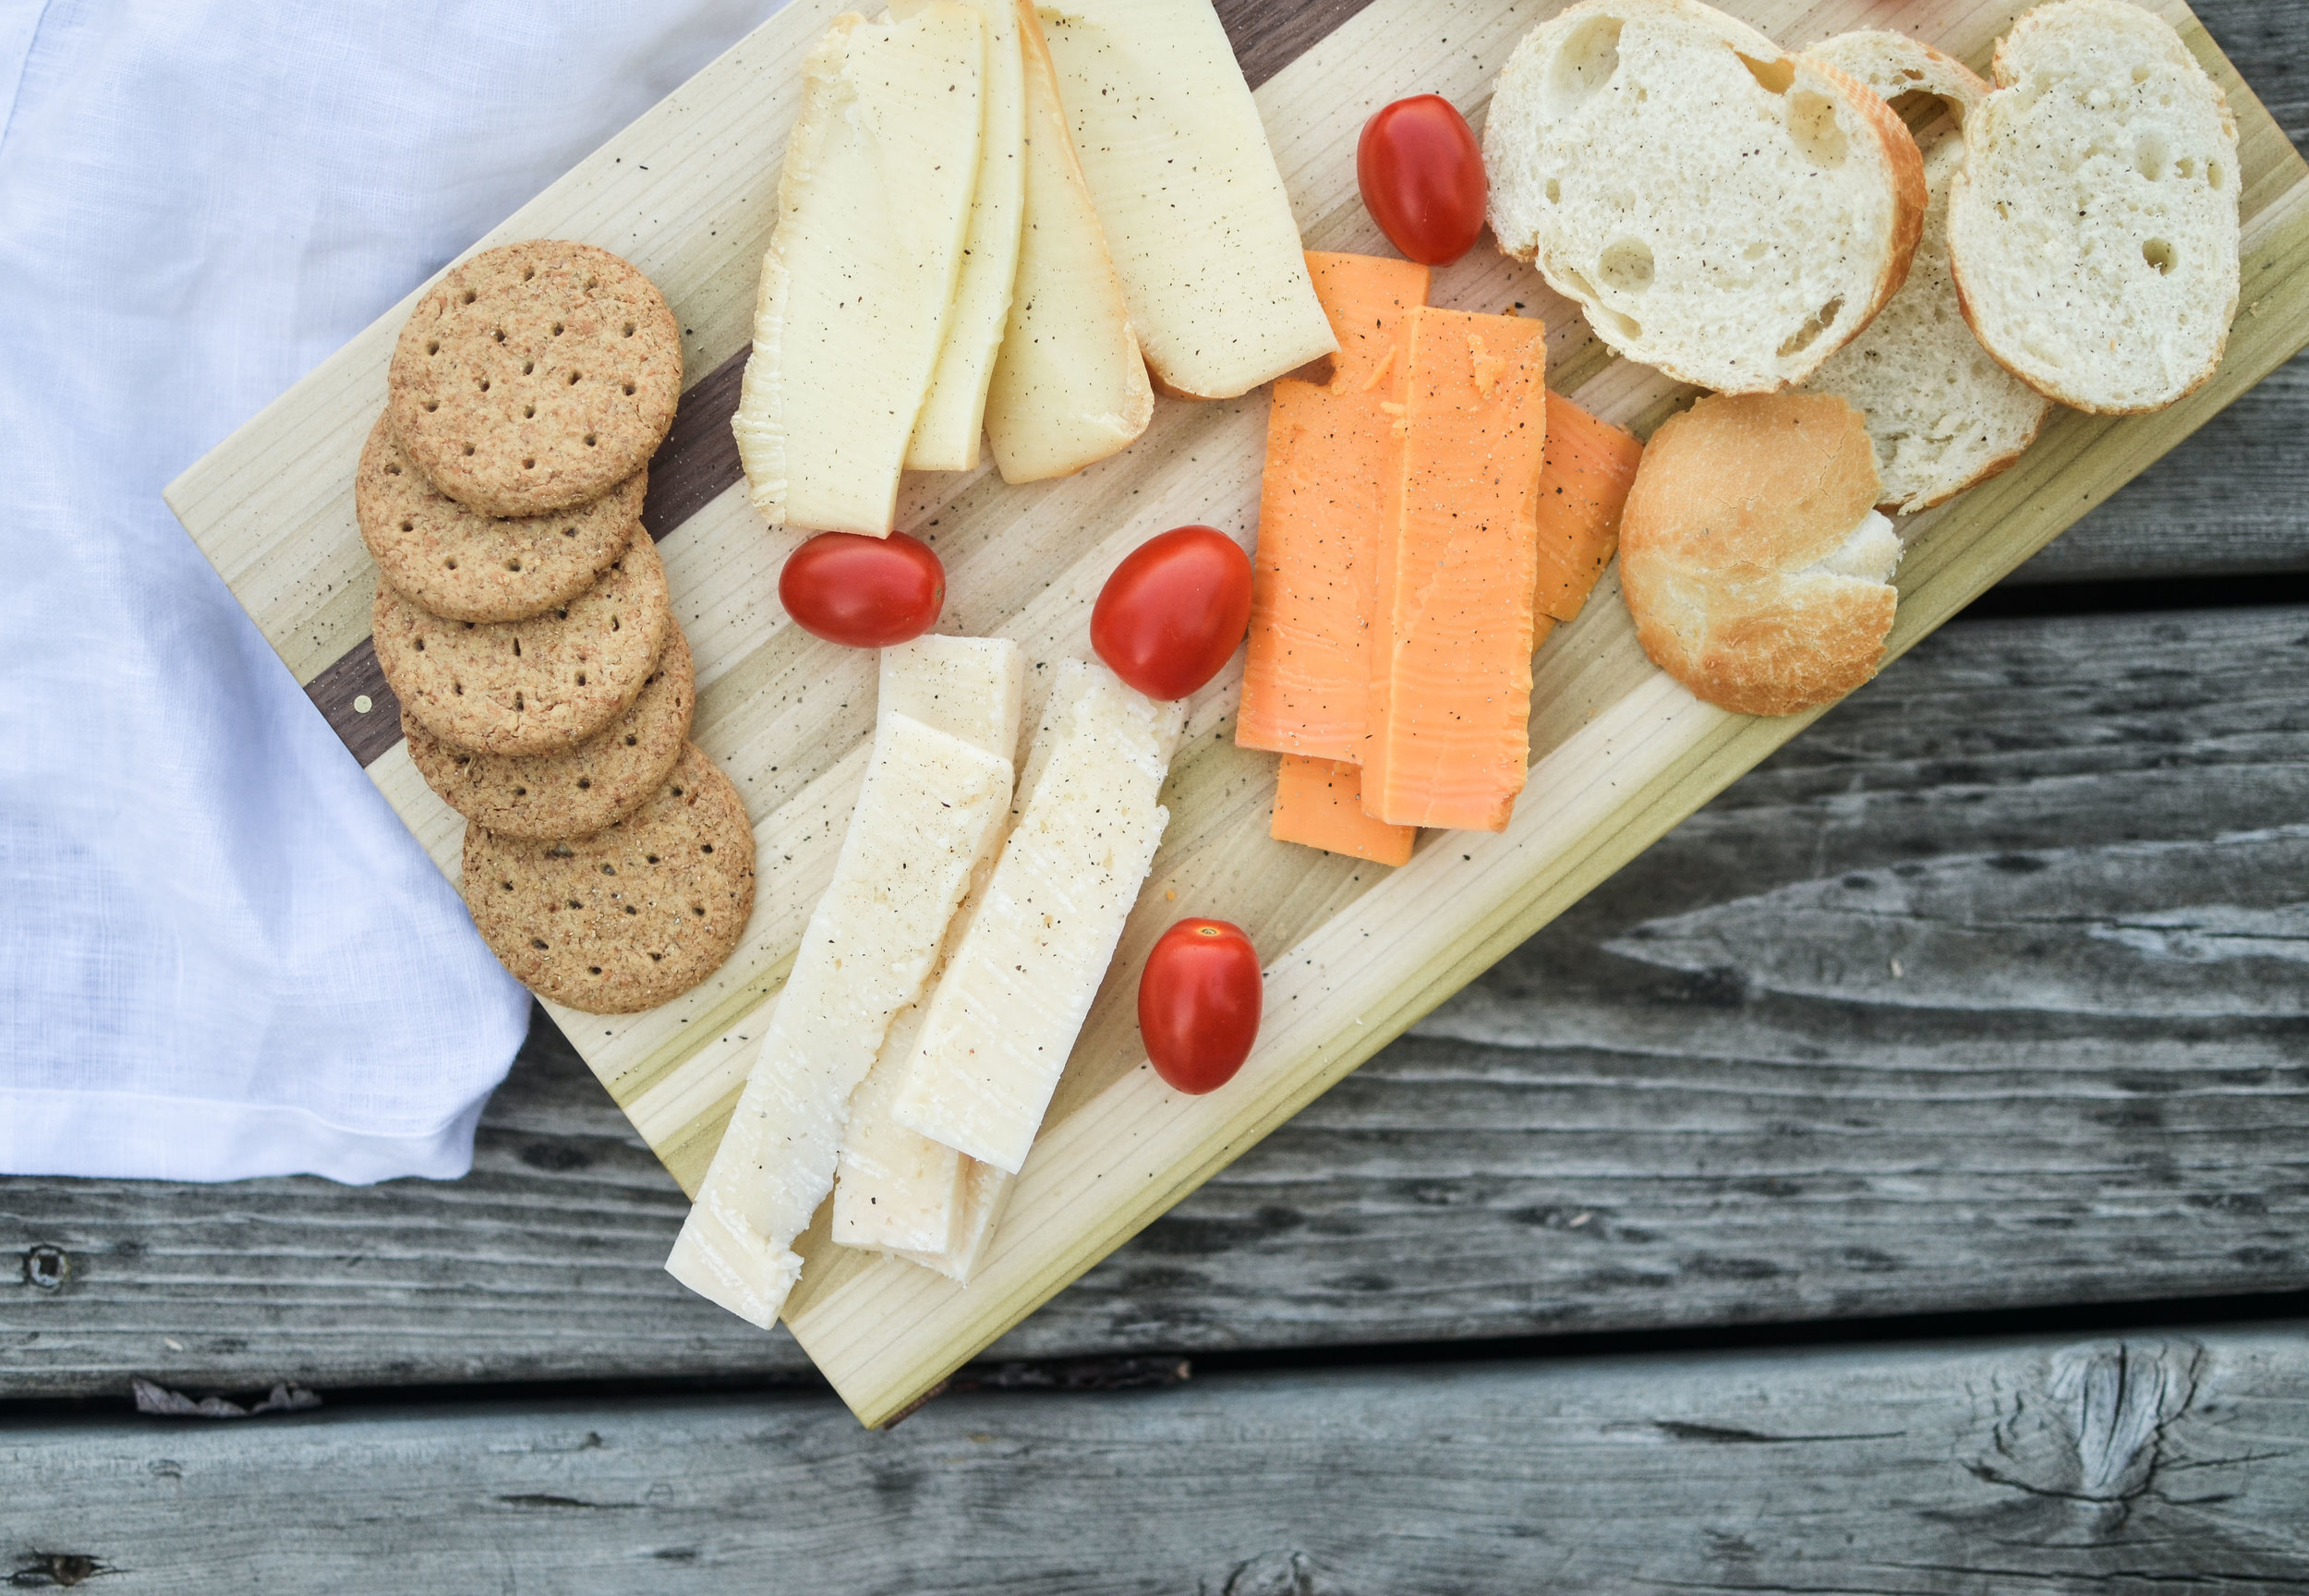 Wendling_Boyd_Gather_Table_Co_Charcuterie_Plate-12.jpg